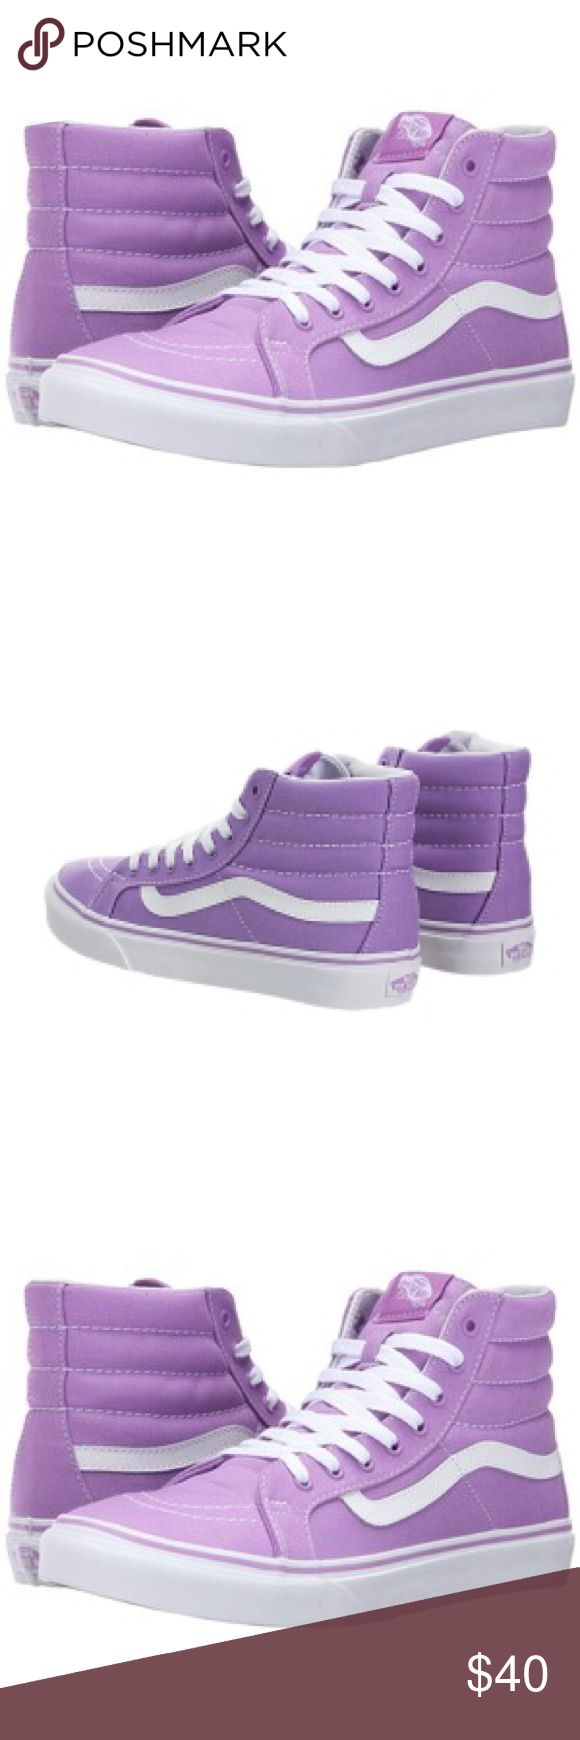 Vans SK8-Hi Slim Classic Africa's The Sk8-Hi Slim, a slimmed down version of the legendary Vans lace-up high top, features sturdy canvas uppers, padded collars for support and flexibility, and signature rubber waffle outsoles. These are such a beautiful color way of African Violet  and True White. Pictured here is the exact pair for sale. Vans Shoes Sneakers